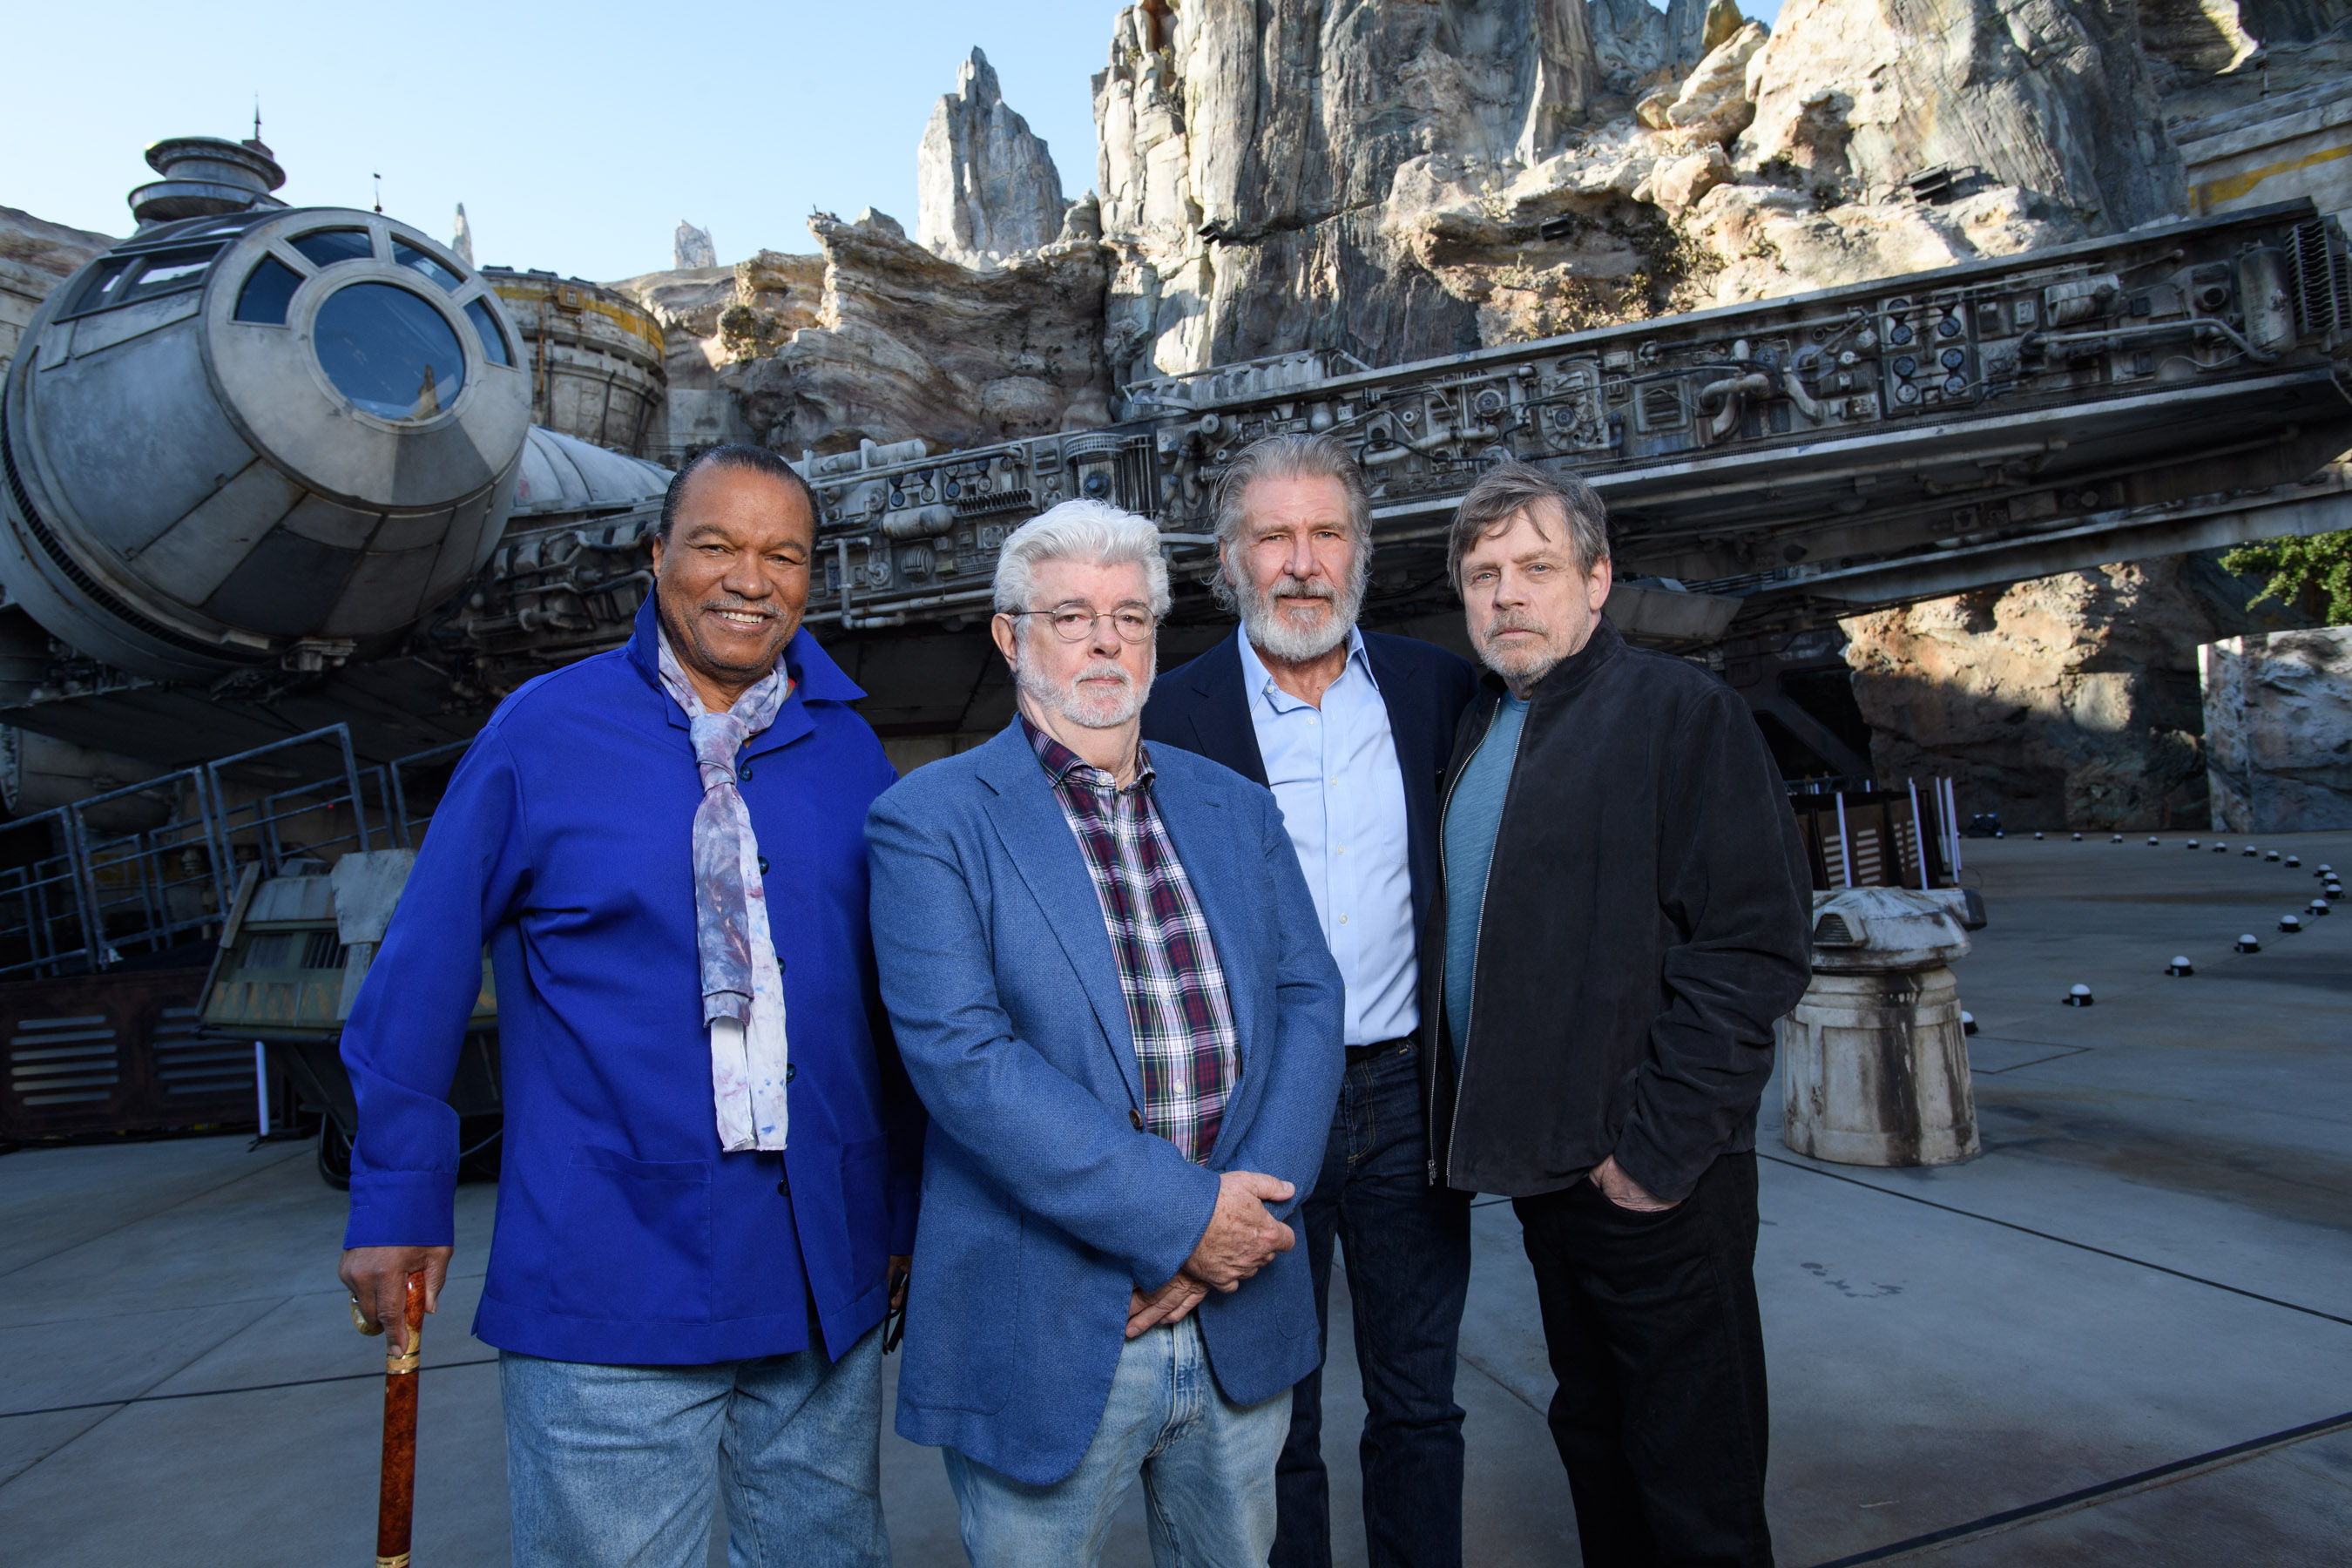 Actor Billy Dee Williams, Star Wars creator George Lucas, actors Harrison Ford and Mark Hamill pose in front of the Millennium Falcon at Star Wars: Galaxy's Edge at Disneyland